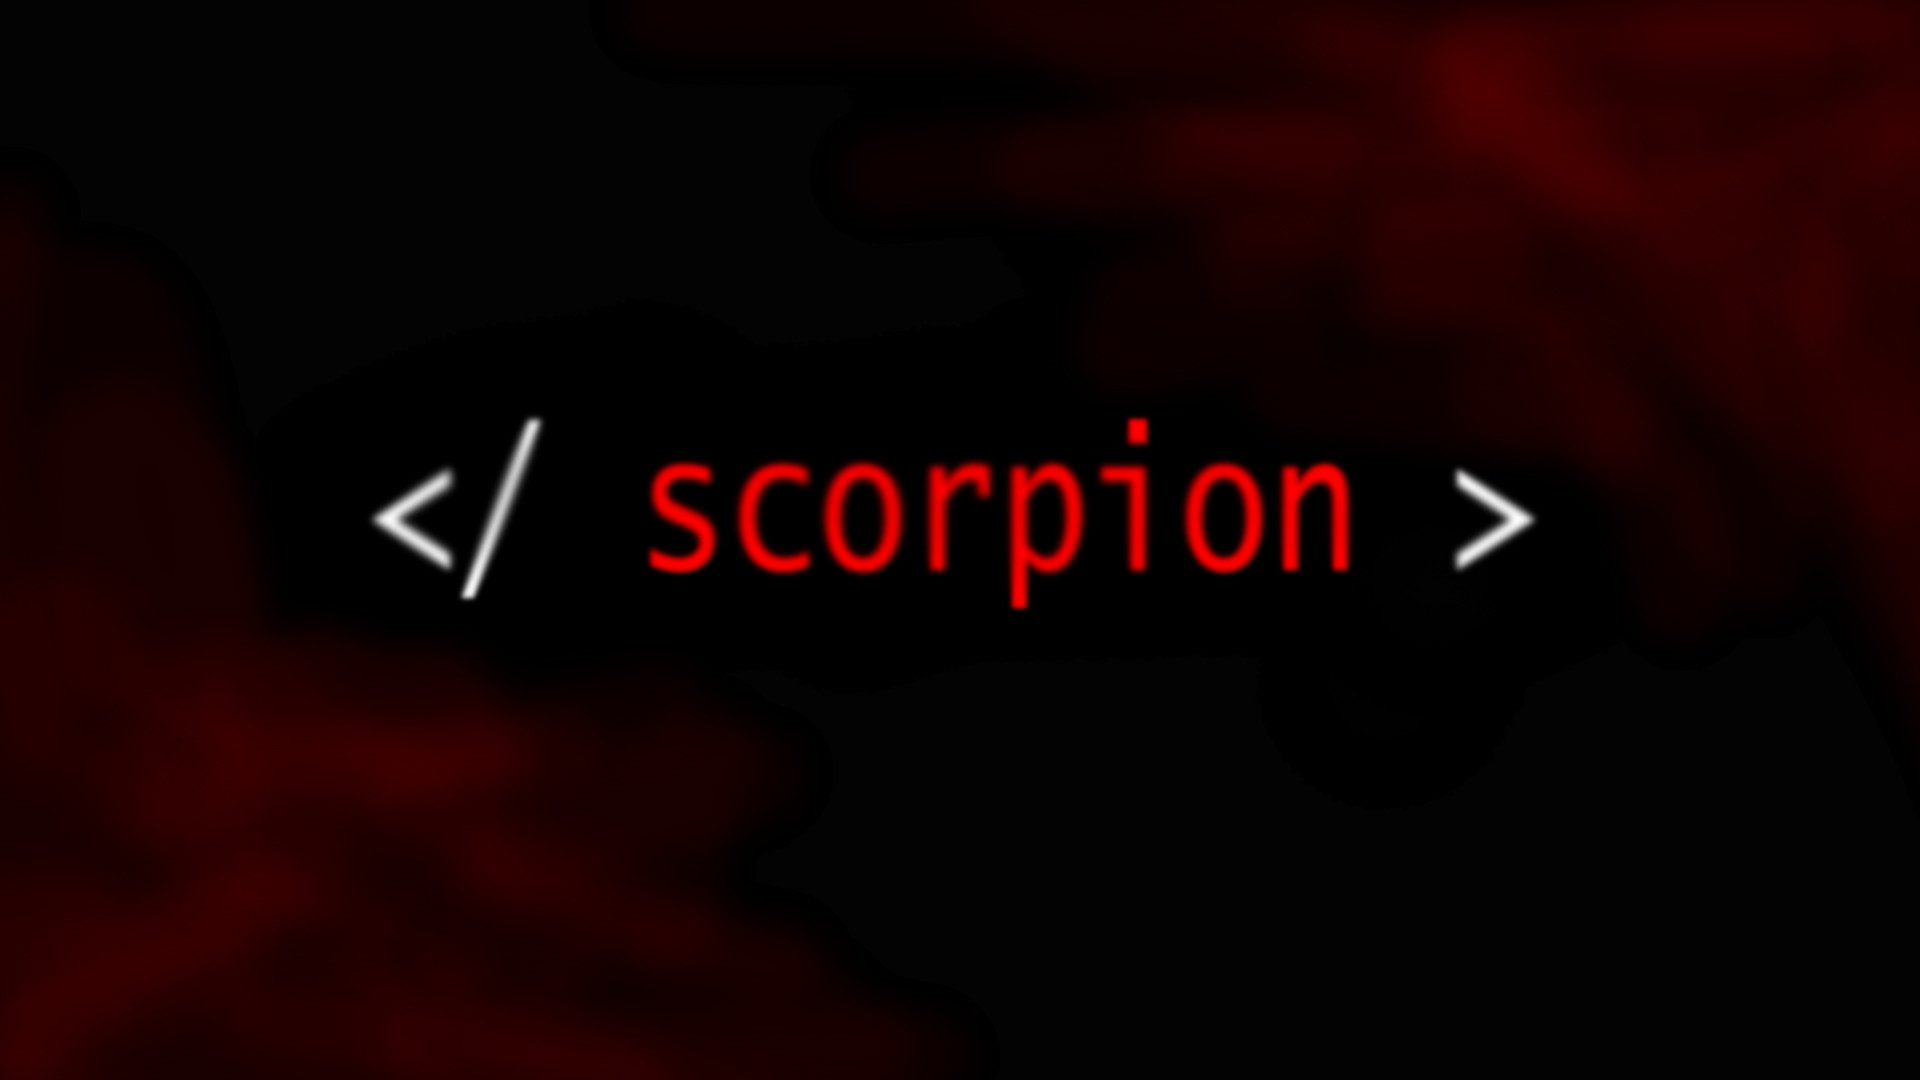 Image Metal Scorpion Wallpapers And Stock Photos Source Scorpio